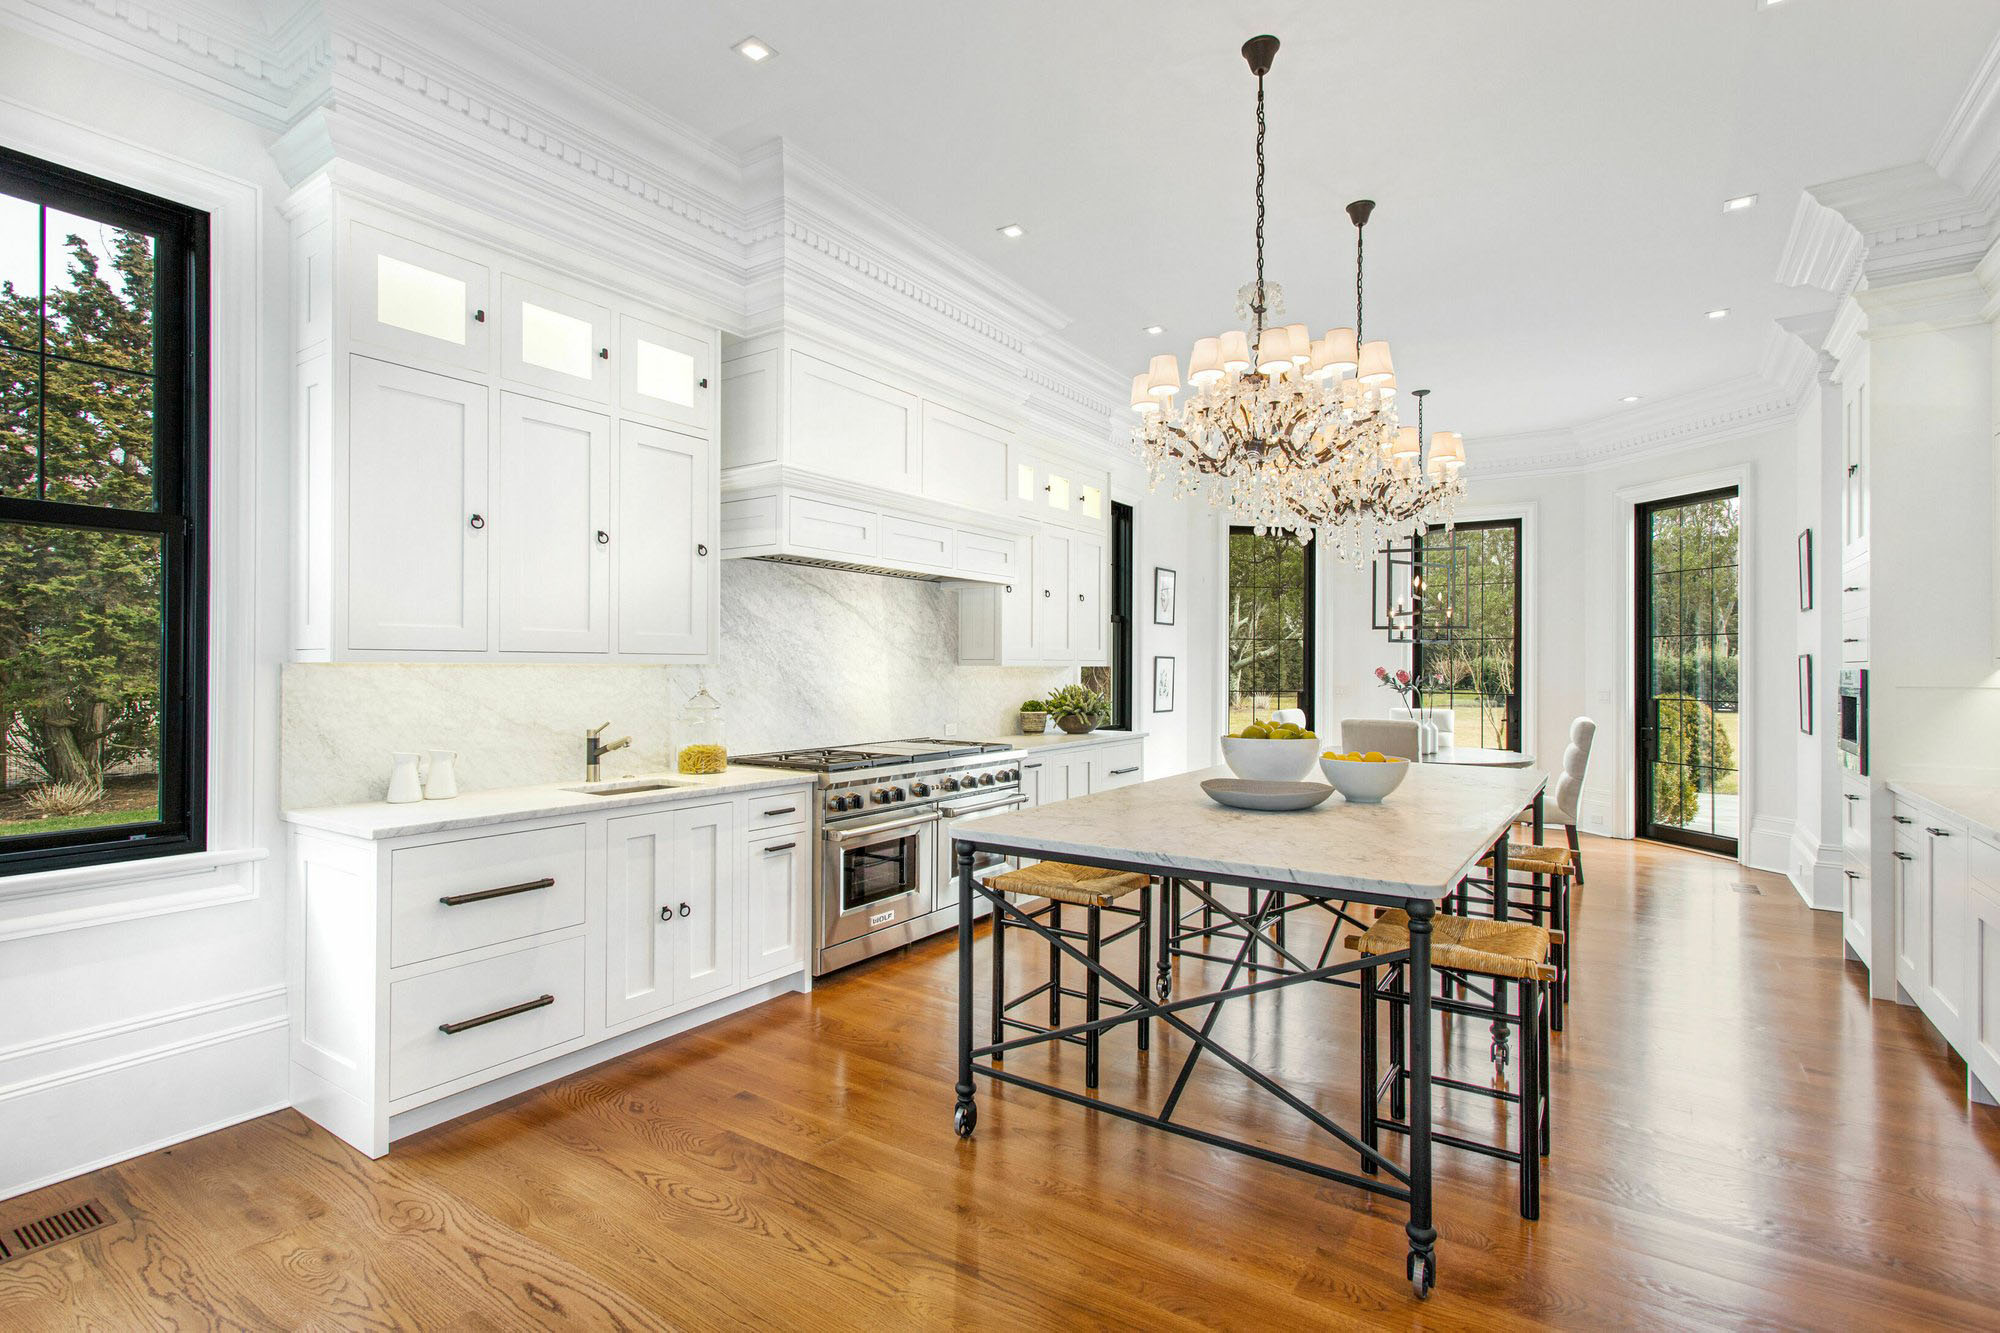 Beautiful classic kitchen design featuring thick crown molding tied into the upper cabinets.